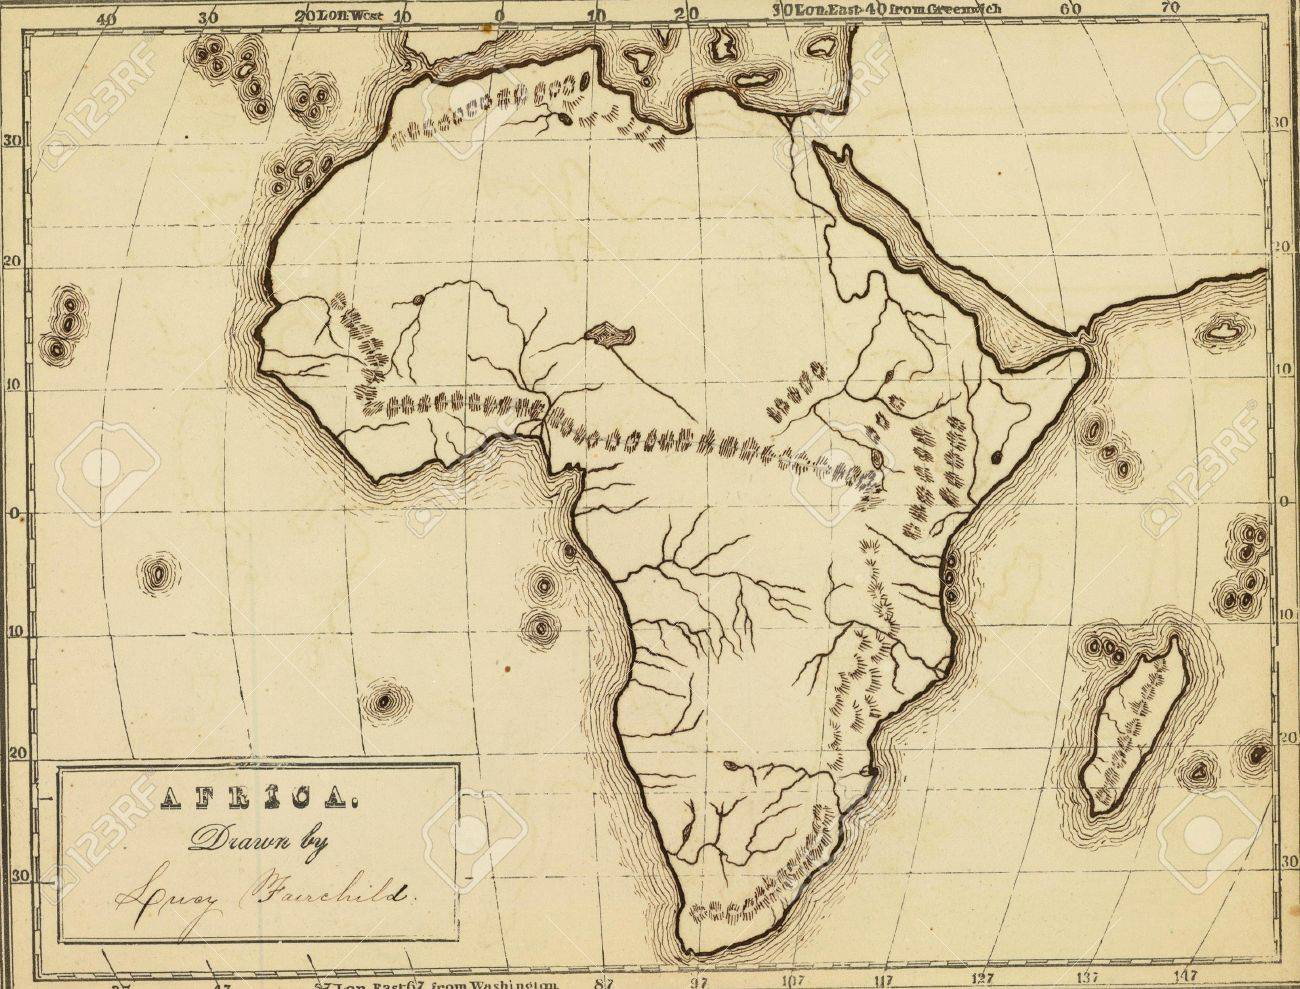 Map Of Africa 1850.Antique Map Of Africa From Atlas By Fitch Fairchild 1850 Stock